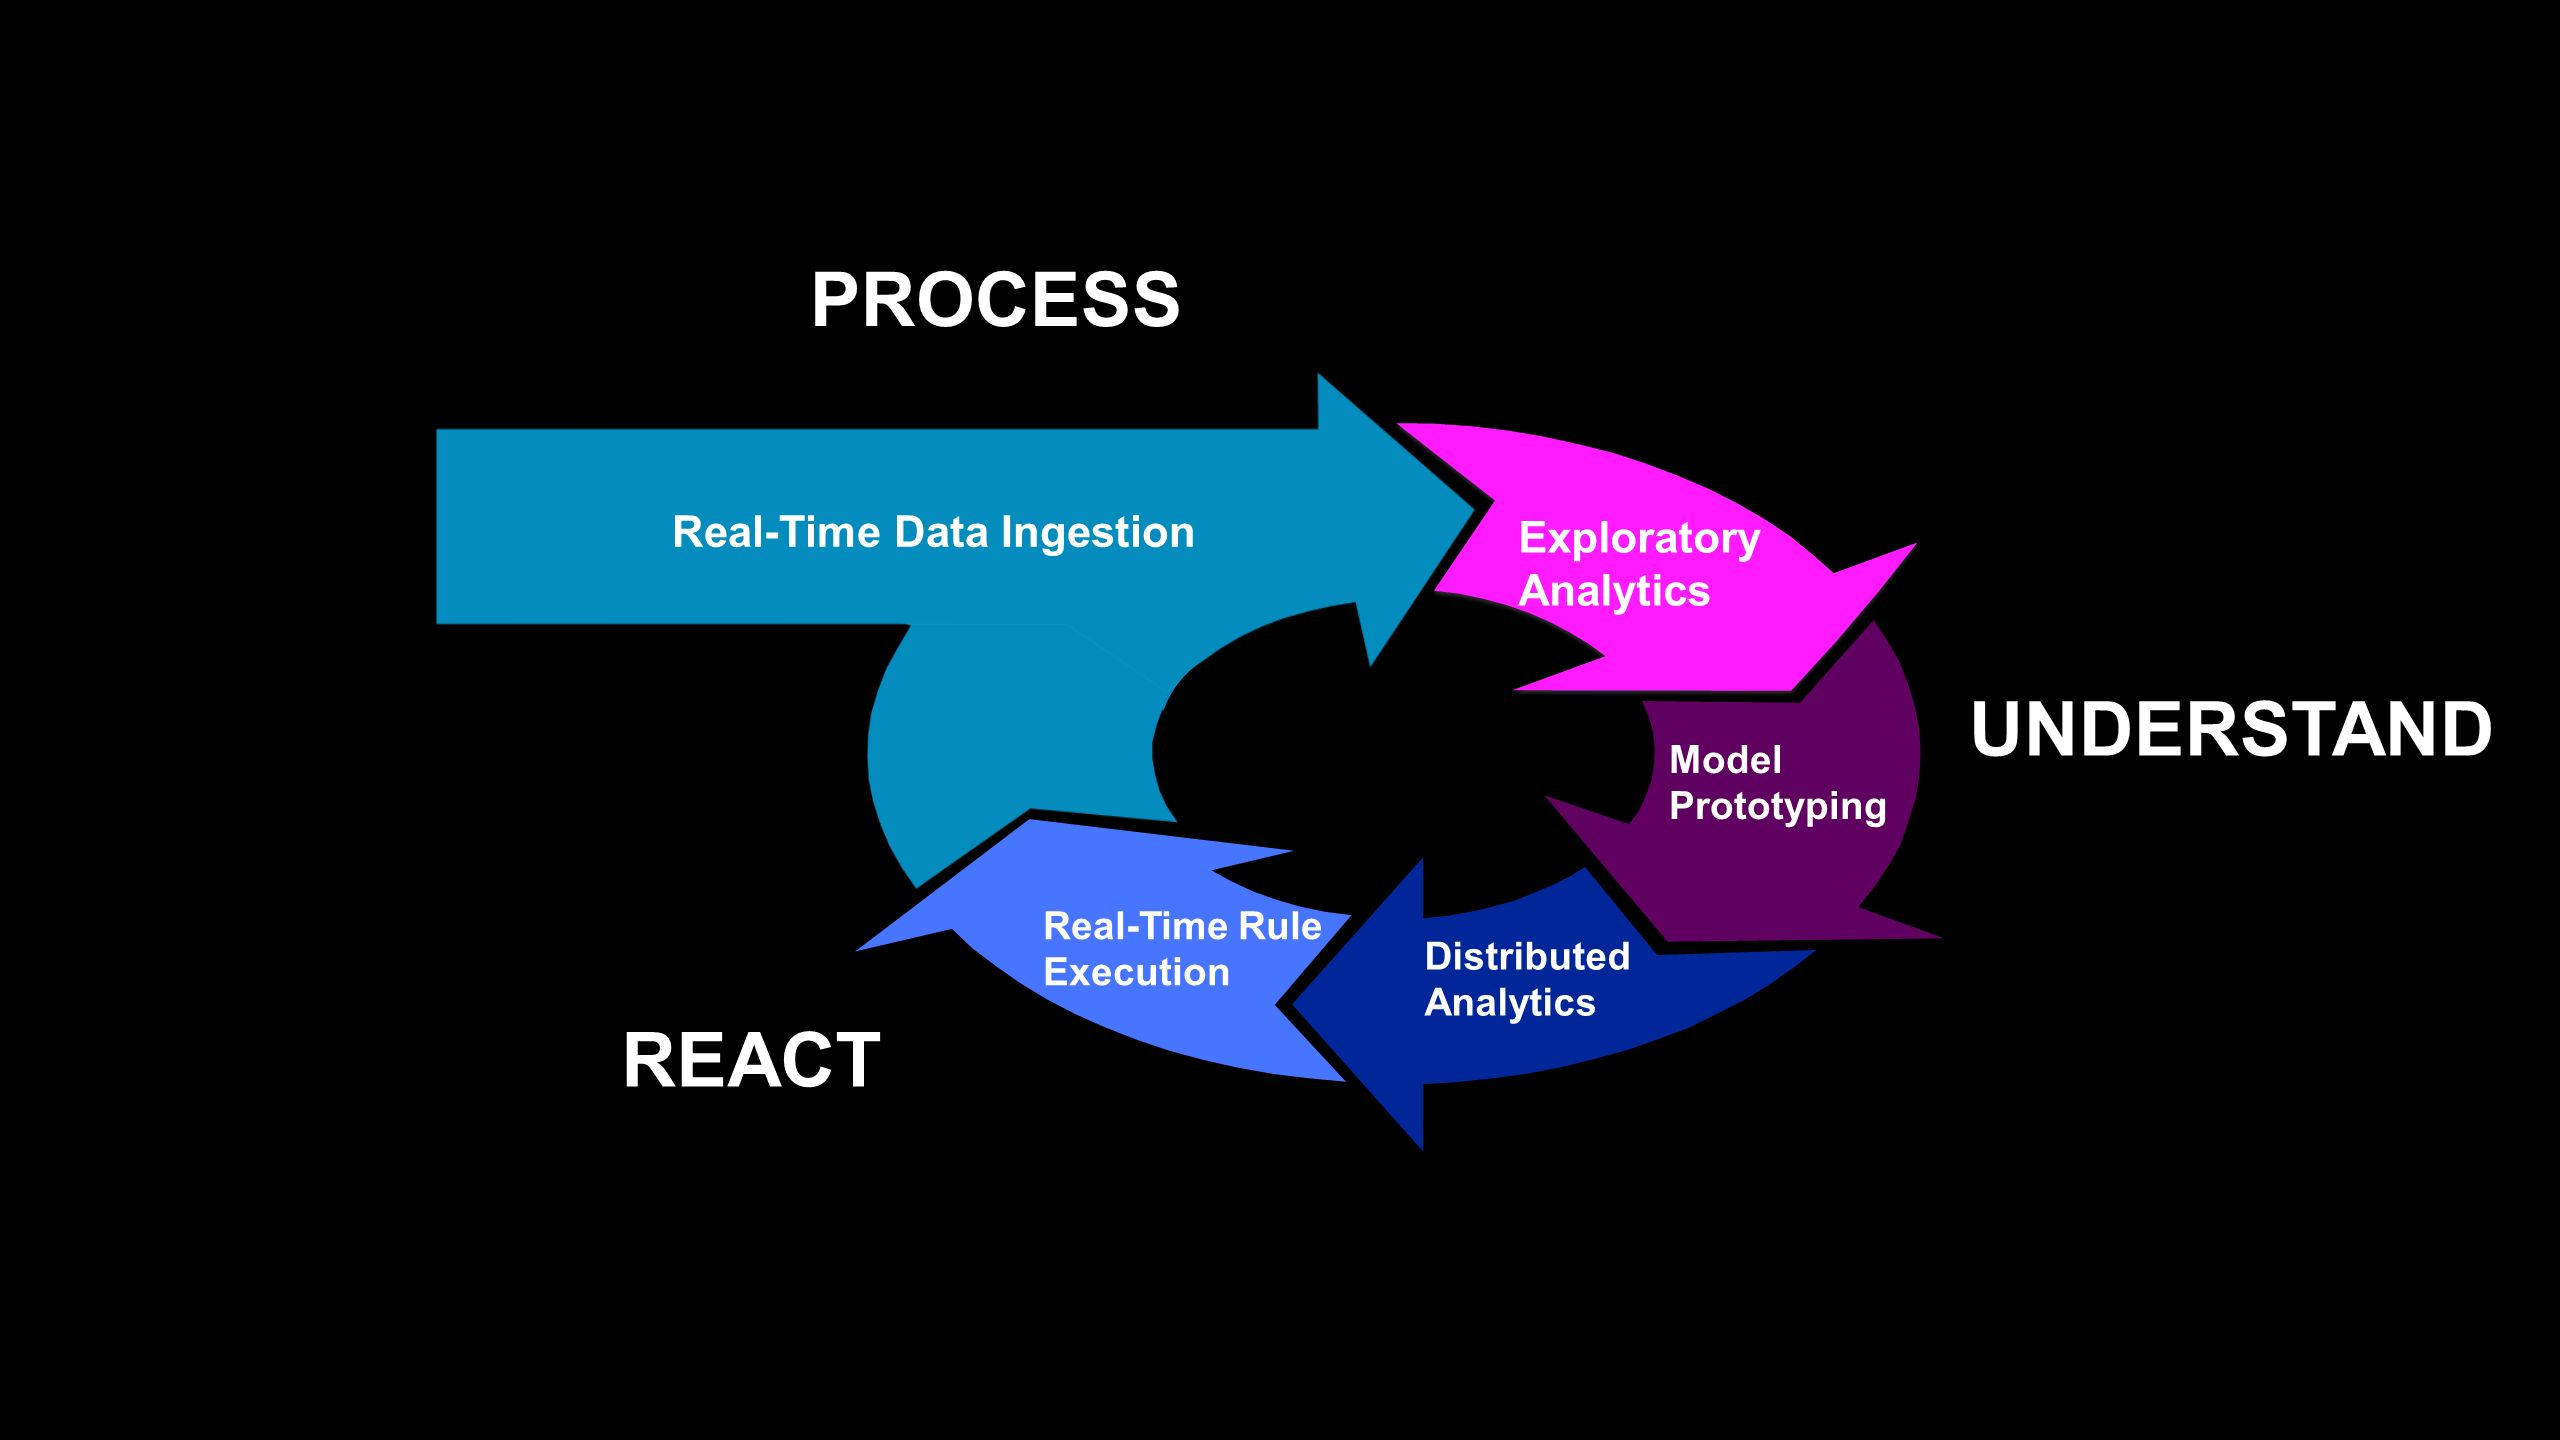 Distributed Analytics Real-Time Data Ingestion Model Prototyping Exploratory Analytics Real-Time Rule Execution PROCESS UNDERSTAND REACT